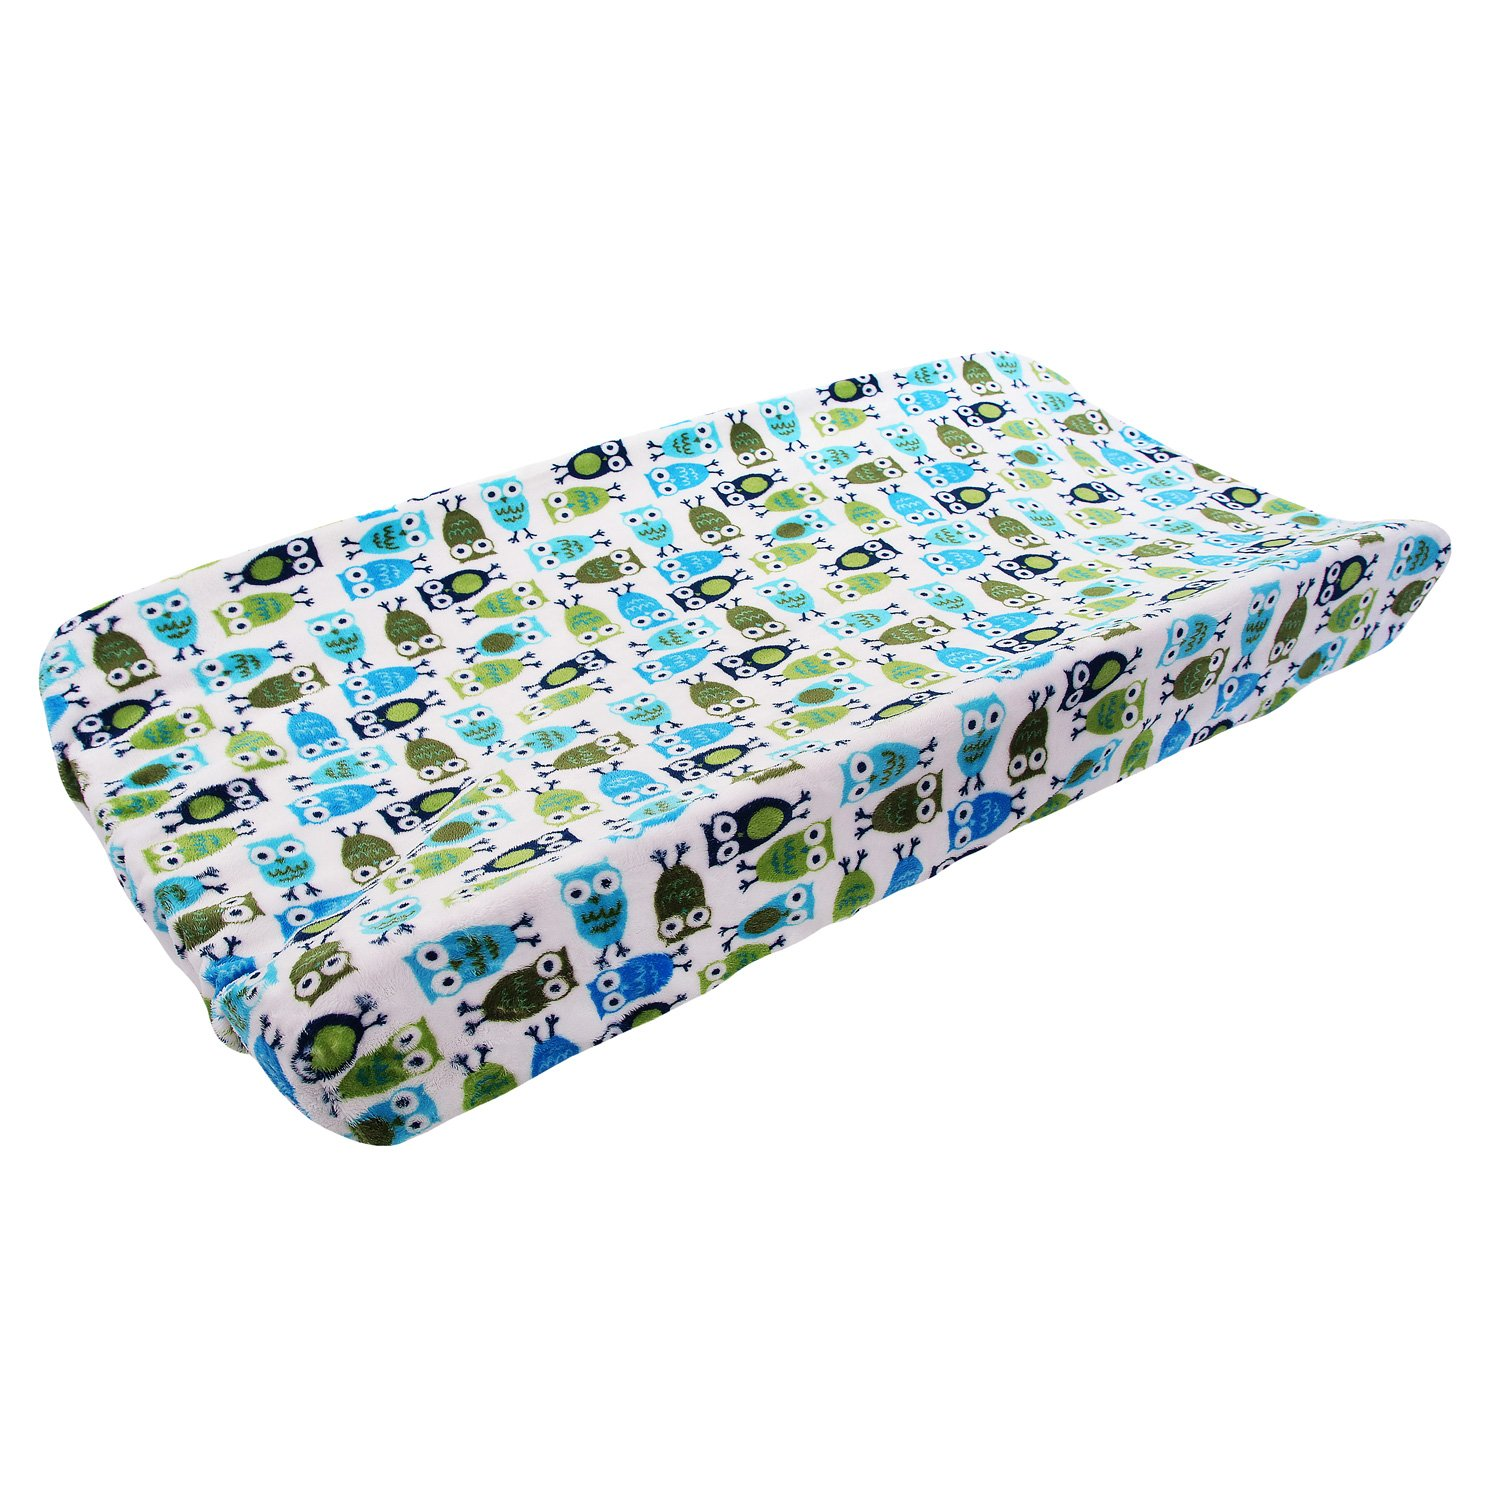 My Blankee Night Owl Minky Changing Pad Cover, Midnight, 16